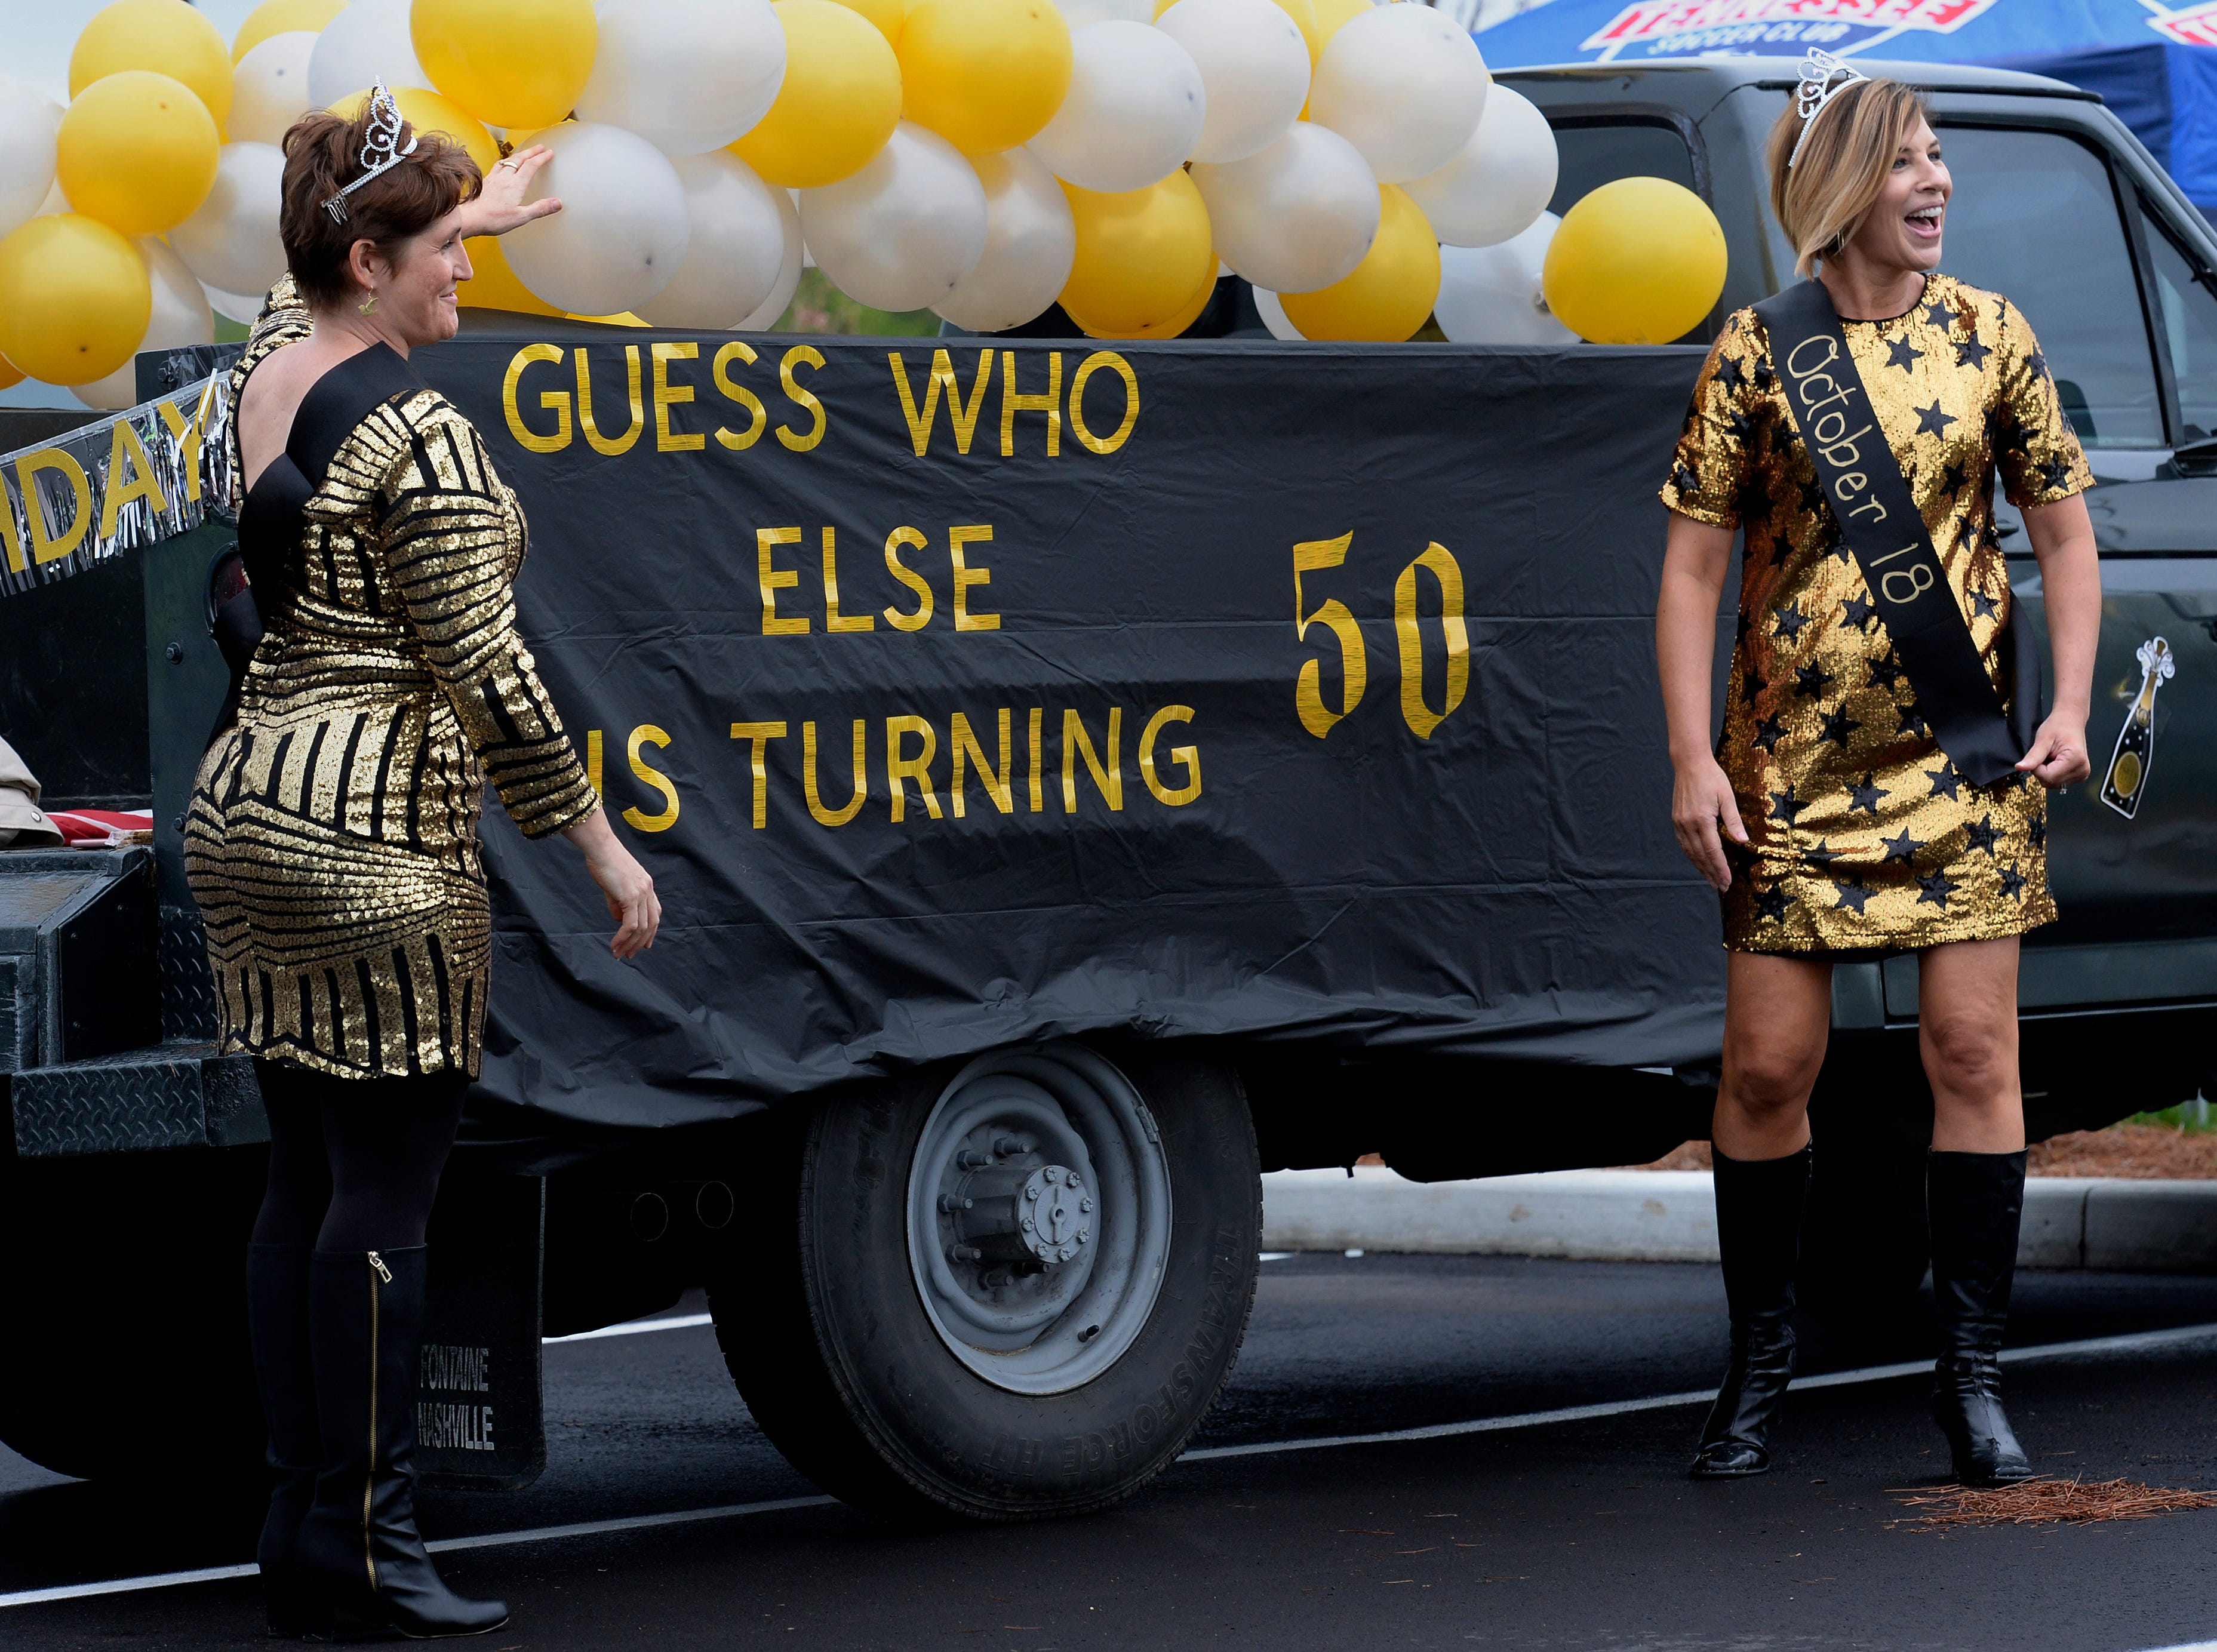 """Stacy Elliott, left, and Melissa Oliver stand by the float they will riding on before the start of Brentwood's """"A Golden Gallop"""" parade celebrating its 50th year as a community on Saturday, April 13, 2019, in Brentwood, Tenn."""